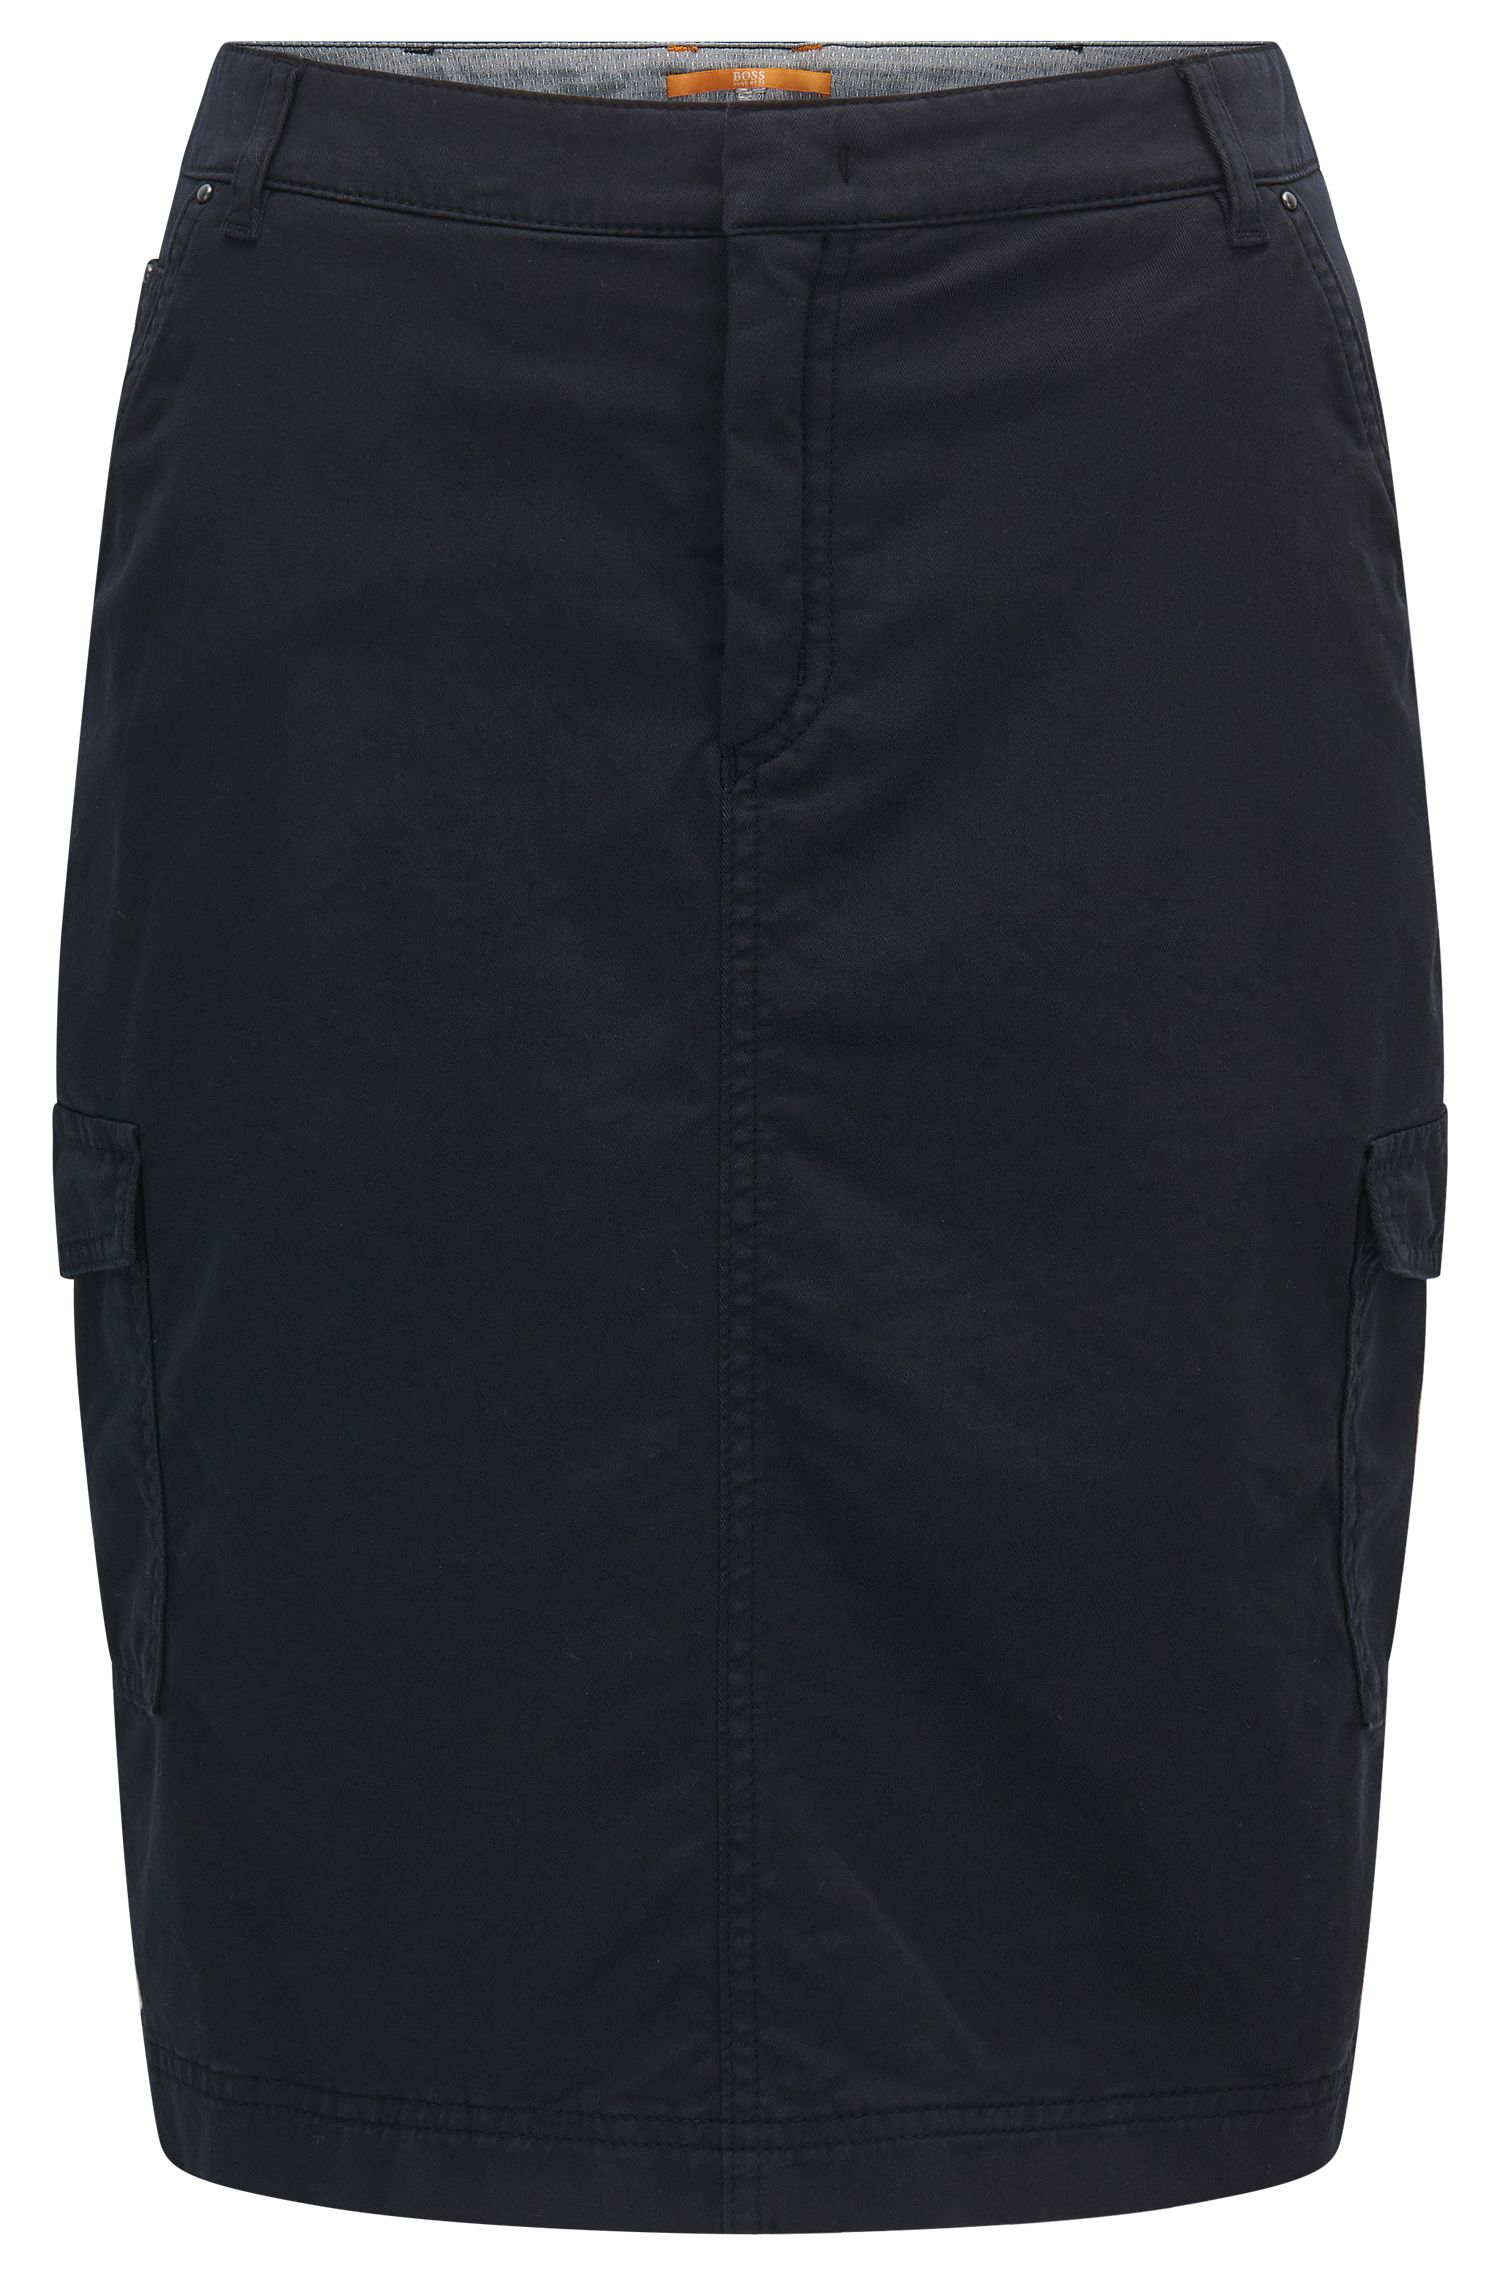 Slim-fit pencil skirt in a cotton blend